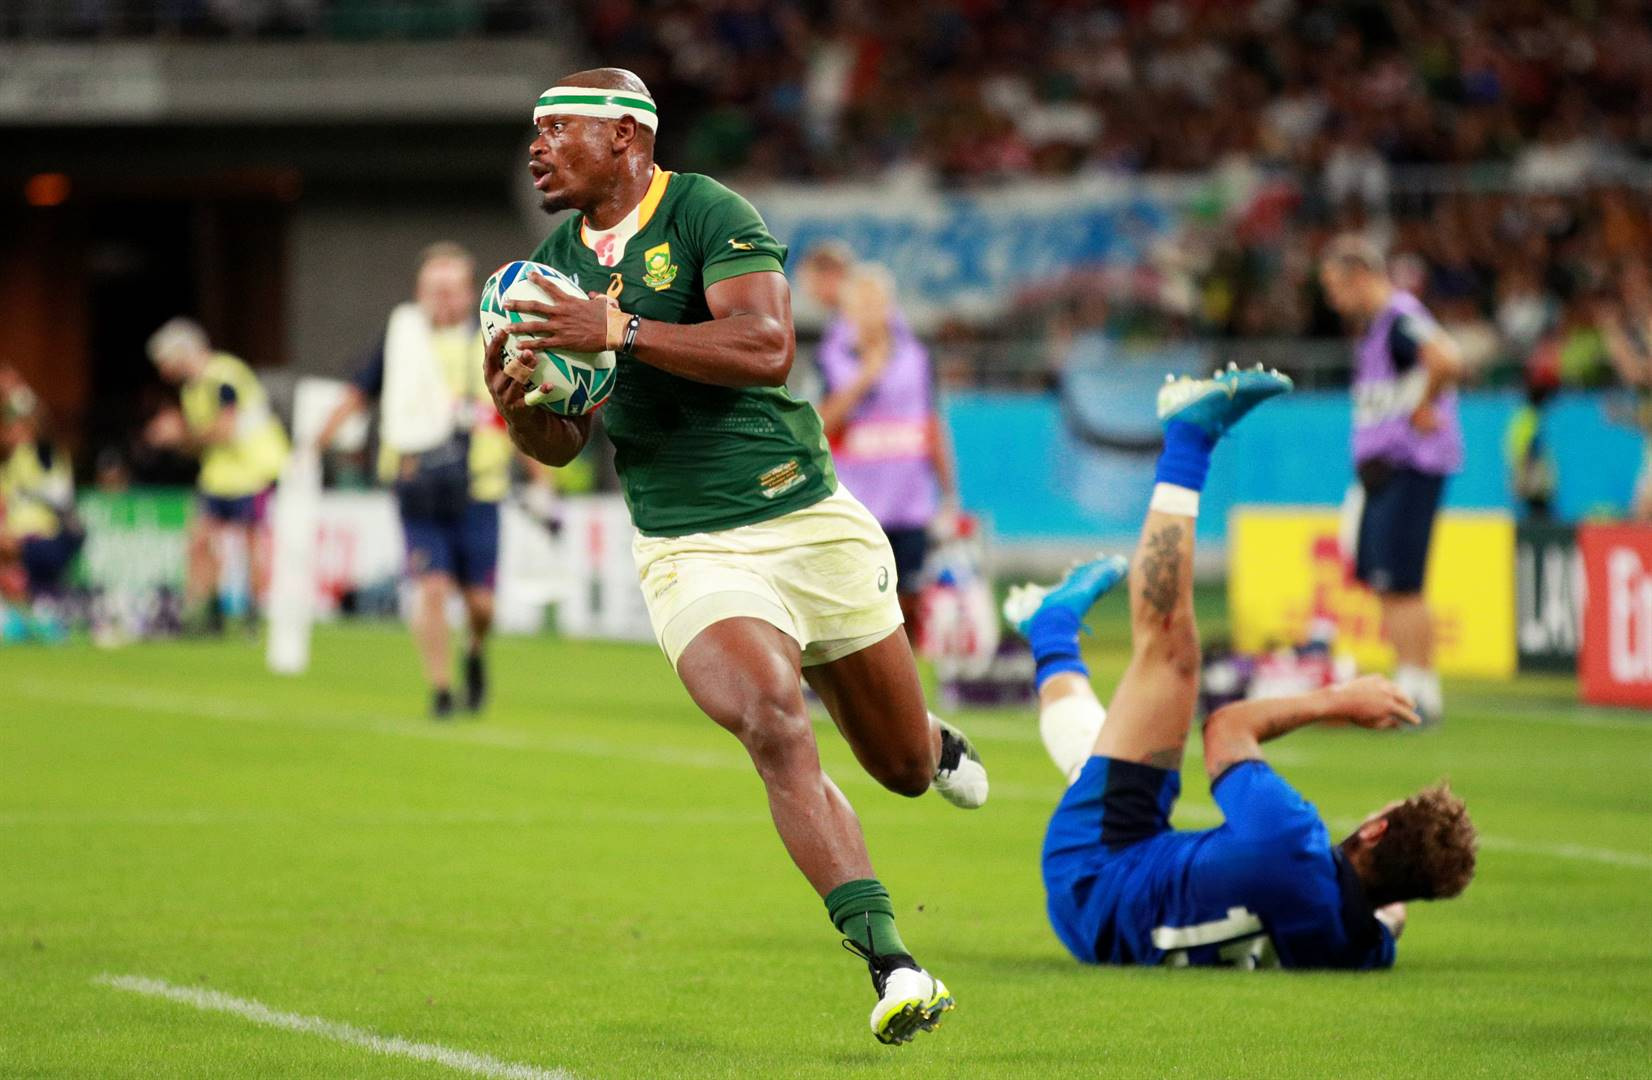 Makazole Mapimpi scores one of the Springboks' seven tries during its match against Italy. Photo: Getty Images